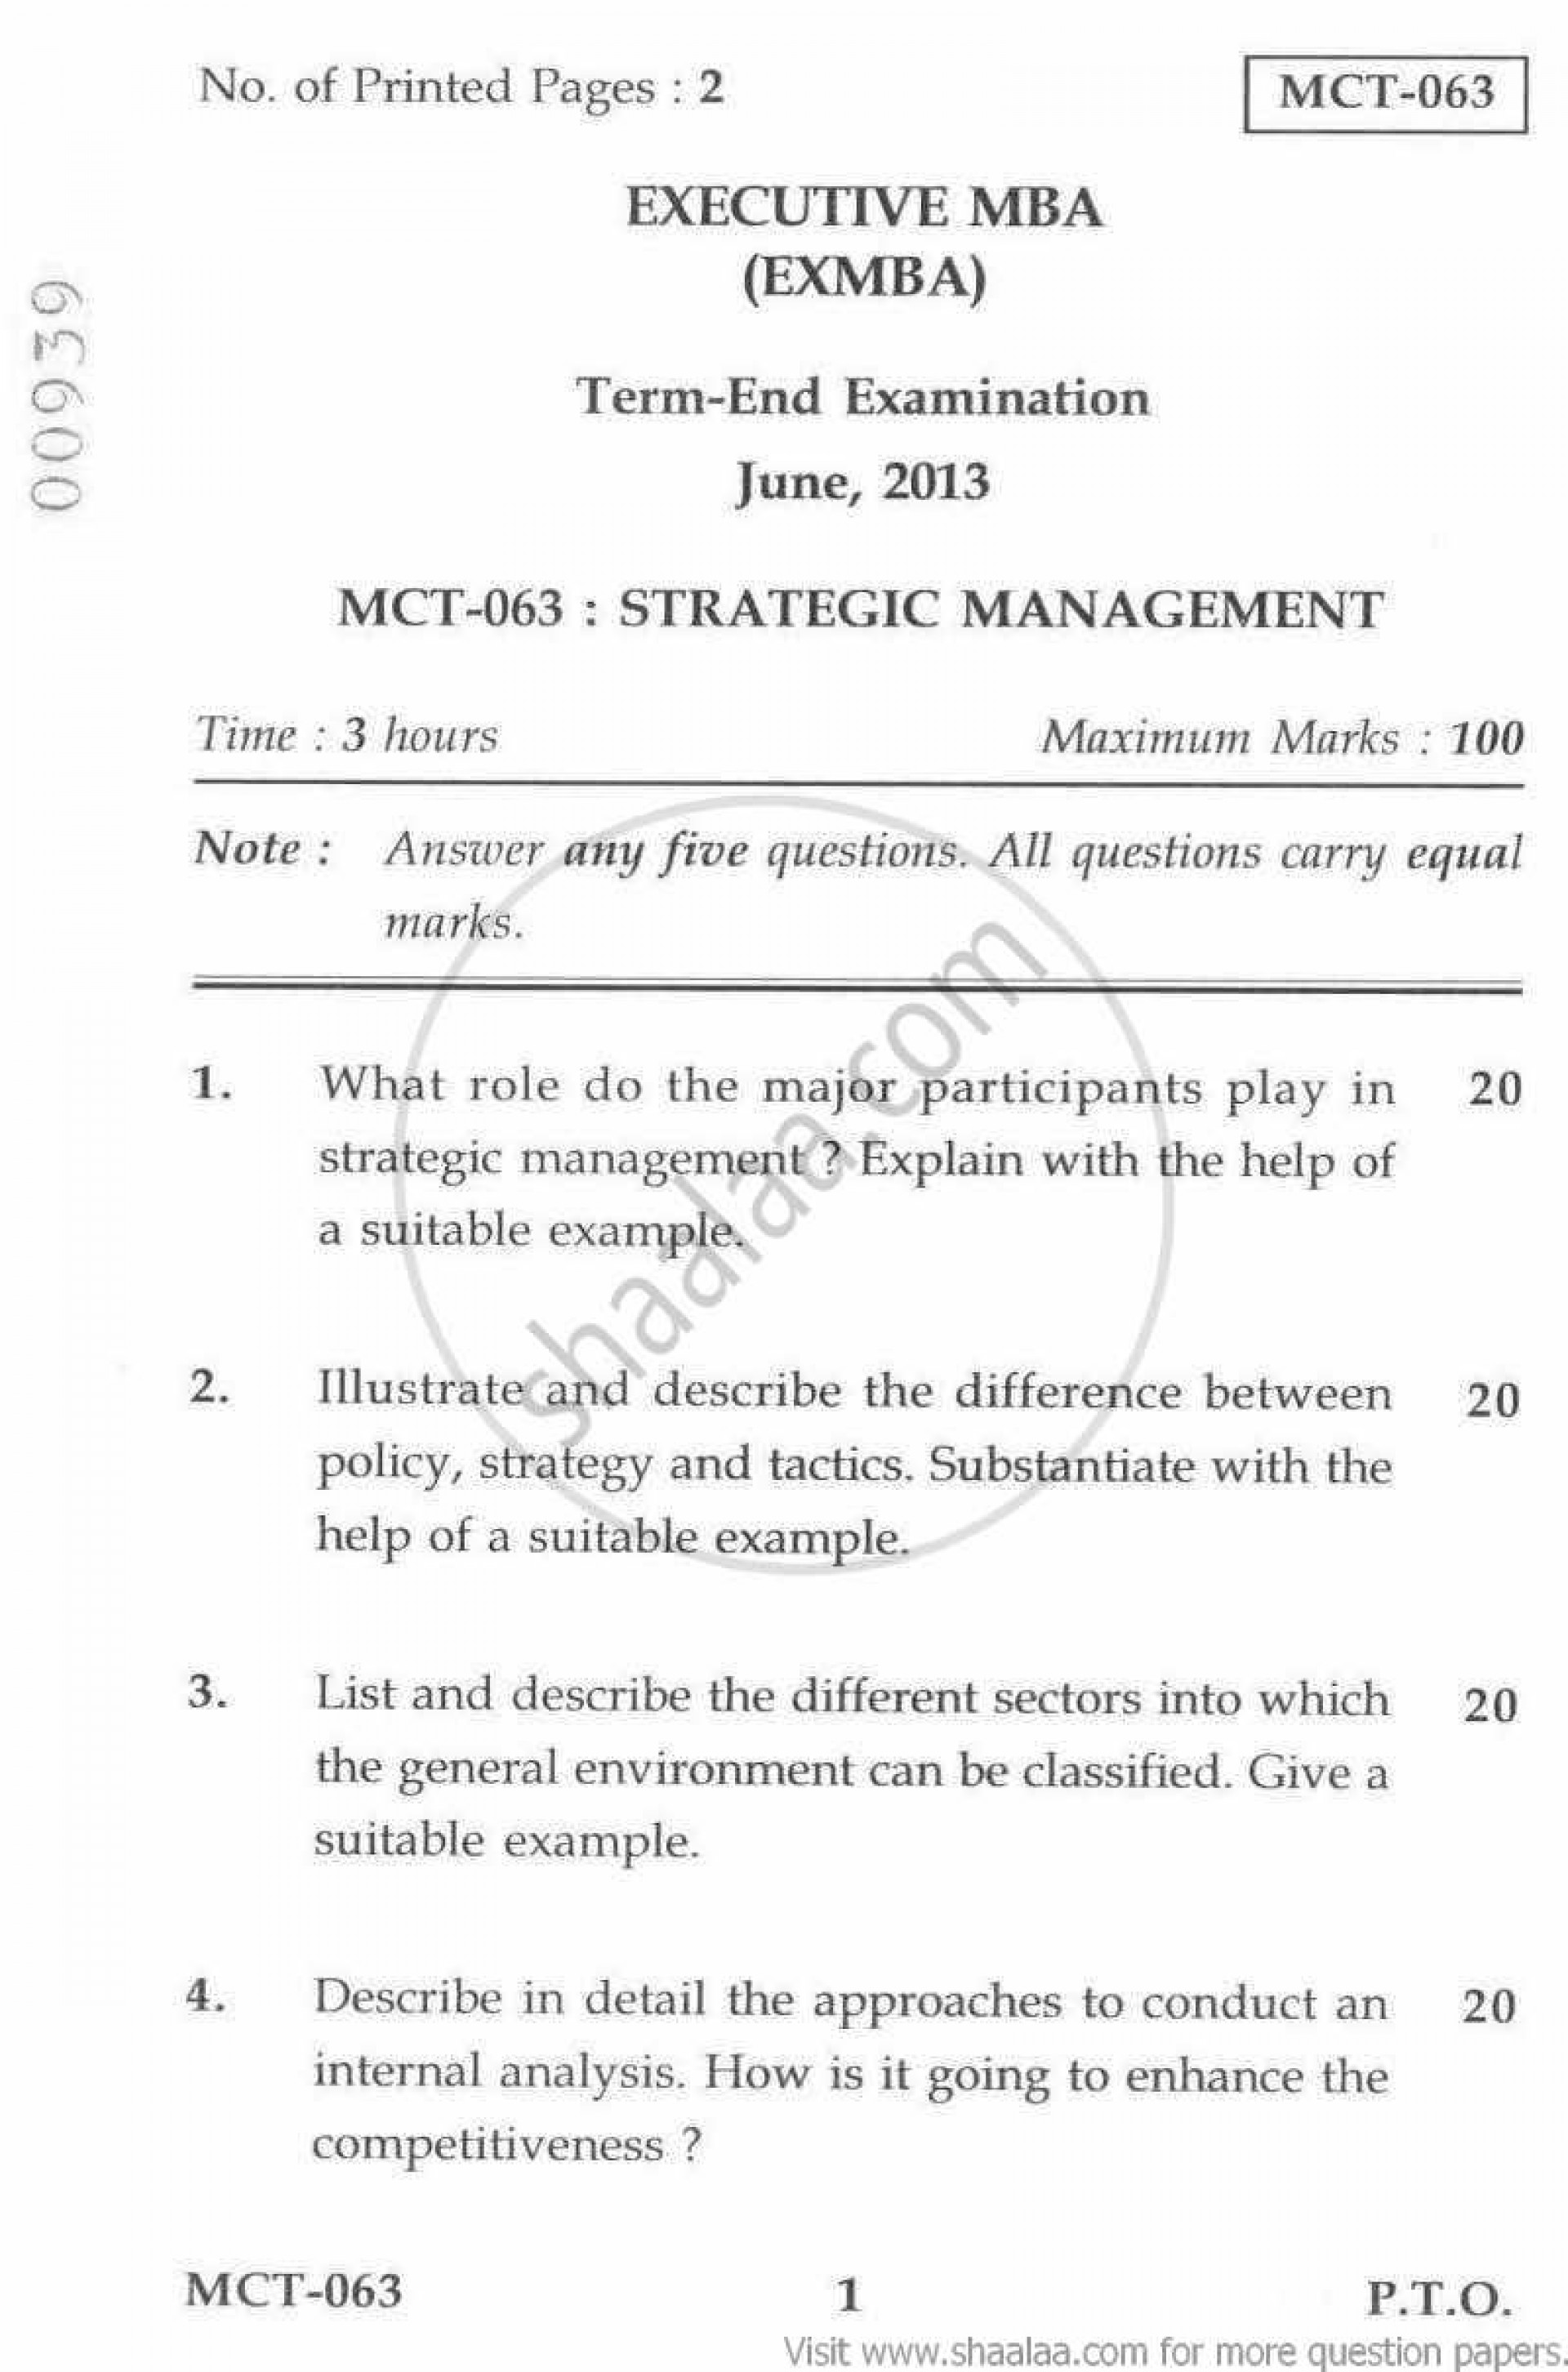 005 Essay Example Role Model Writing For Speech Spm Strategic Management Hamburger Of In Malayalam Pdf Continuous Ielts O Awesome My Father A English Is Parents Hindi Conclusion Paragraph 1920